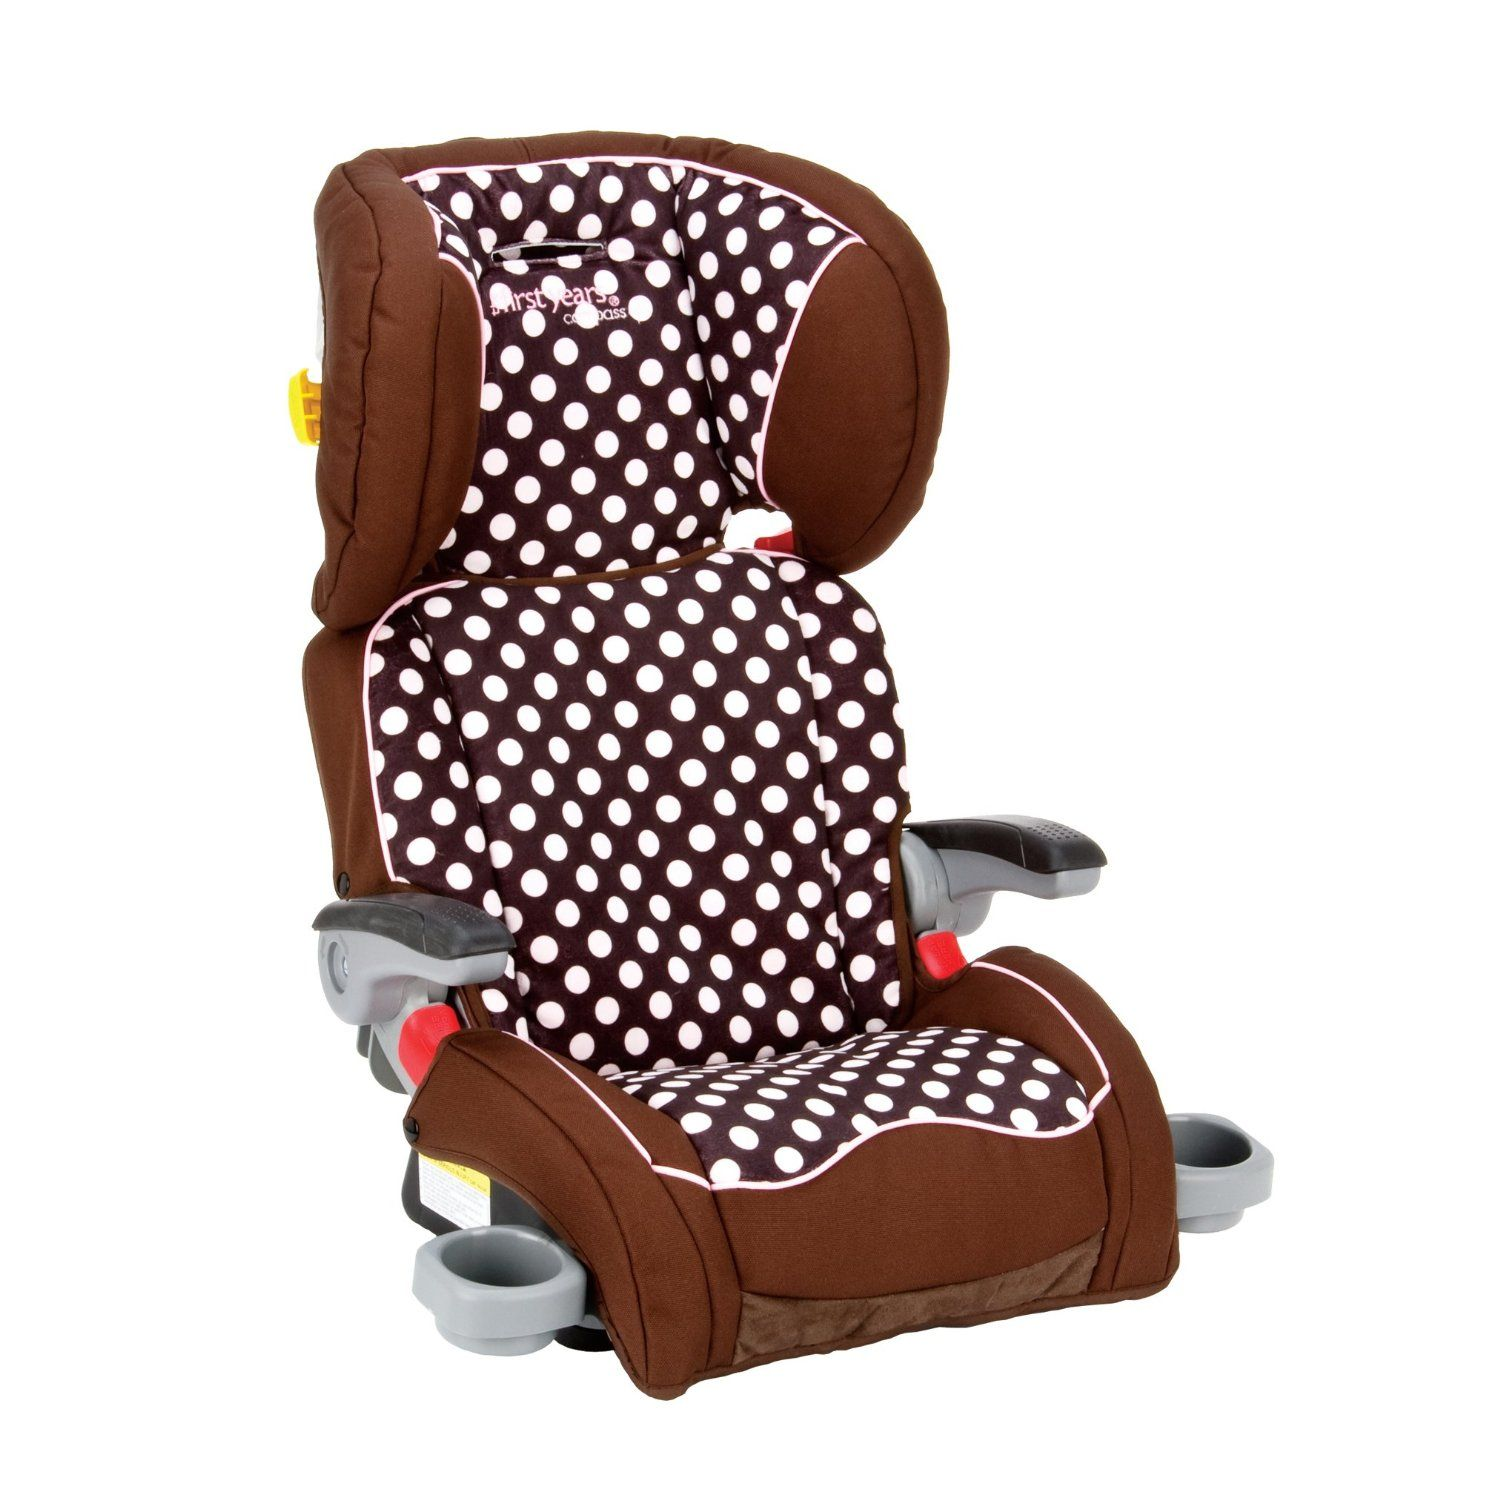 Child safety booster car seats the first years compass